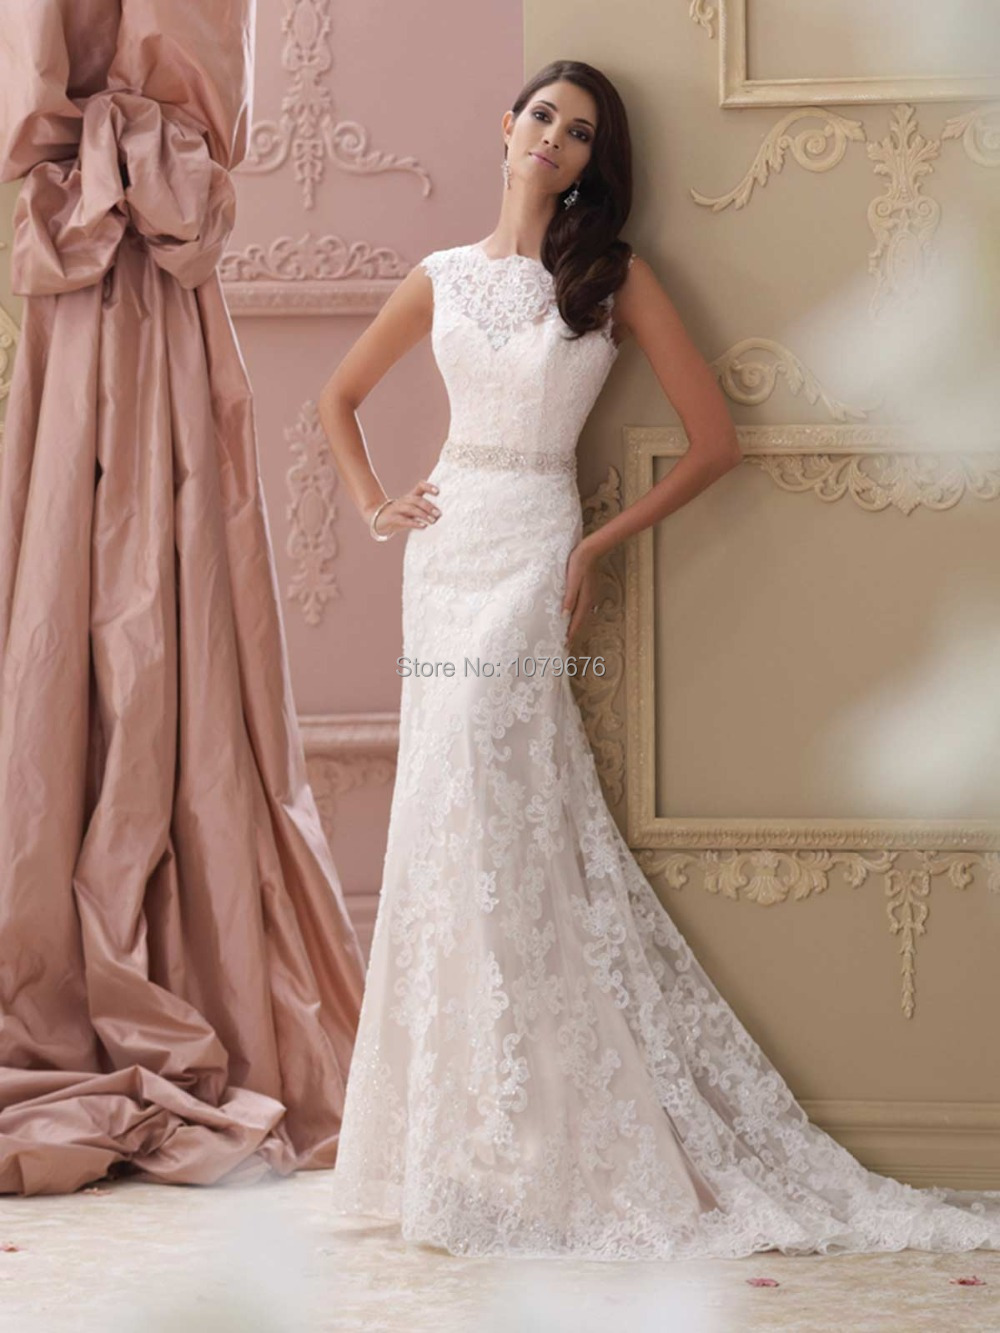 High quality elegant wedding dresses vintage lace beaded for Vintage beaded lace wedding dress